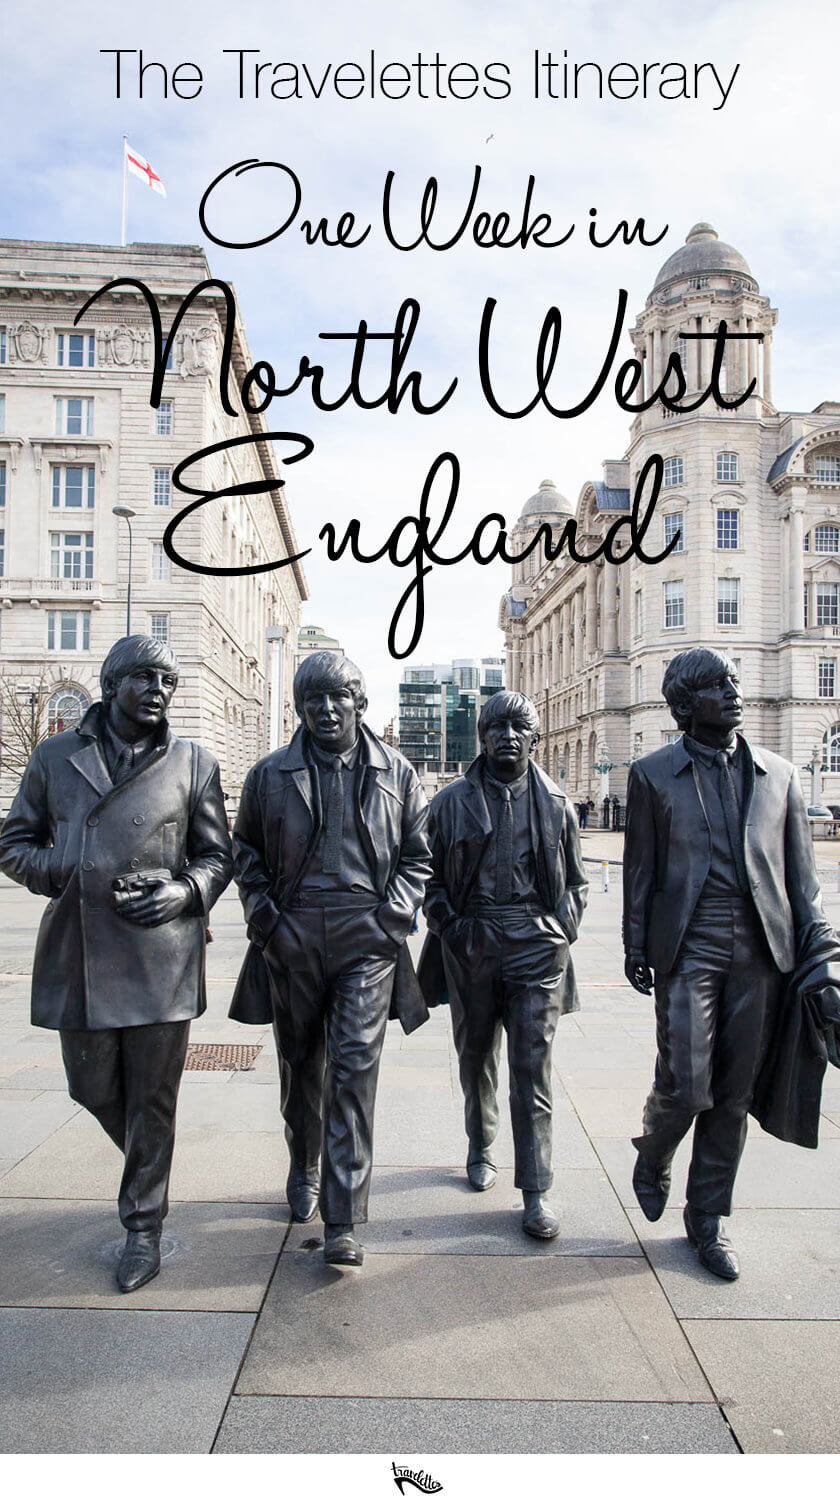 When you visit England, don't just stop in London. Exciting cities and jaw-dropping landscapes are waiting too - here is how to spend one week in North-West England.